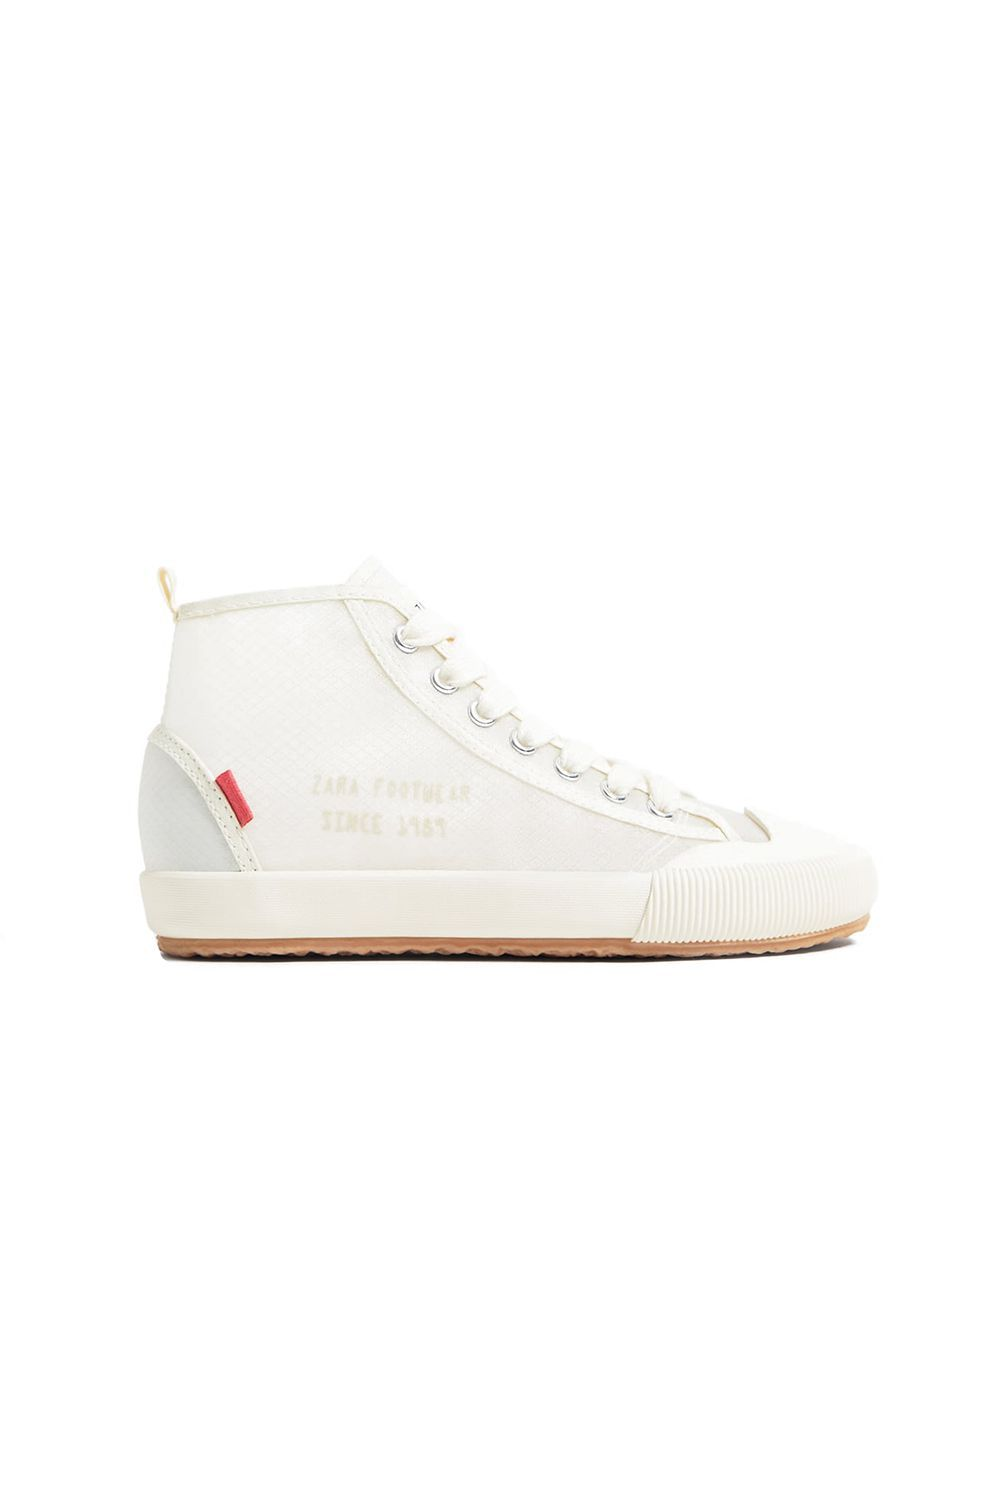 Translucent High Top Sneakers Zara zara.com $39.90 SHOP IT Take the opportunity to show off your funky collection of socks with this see-through high top sneaker. The footwear maintains that clean, crisp white look, but not in a boring conformist way.